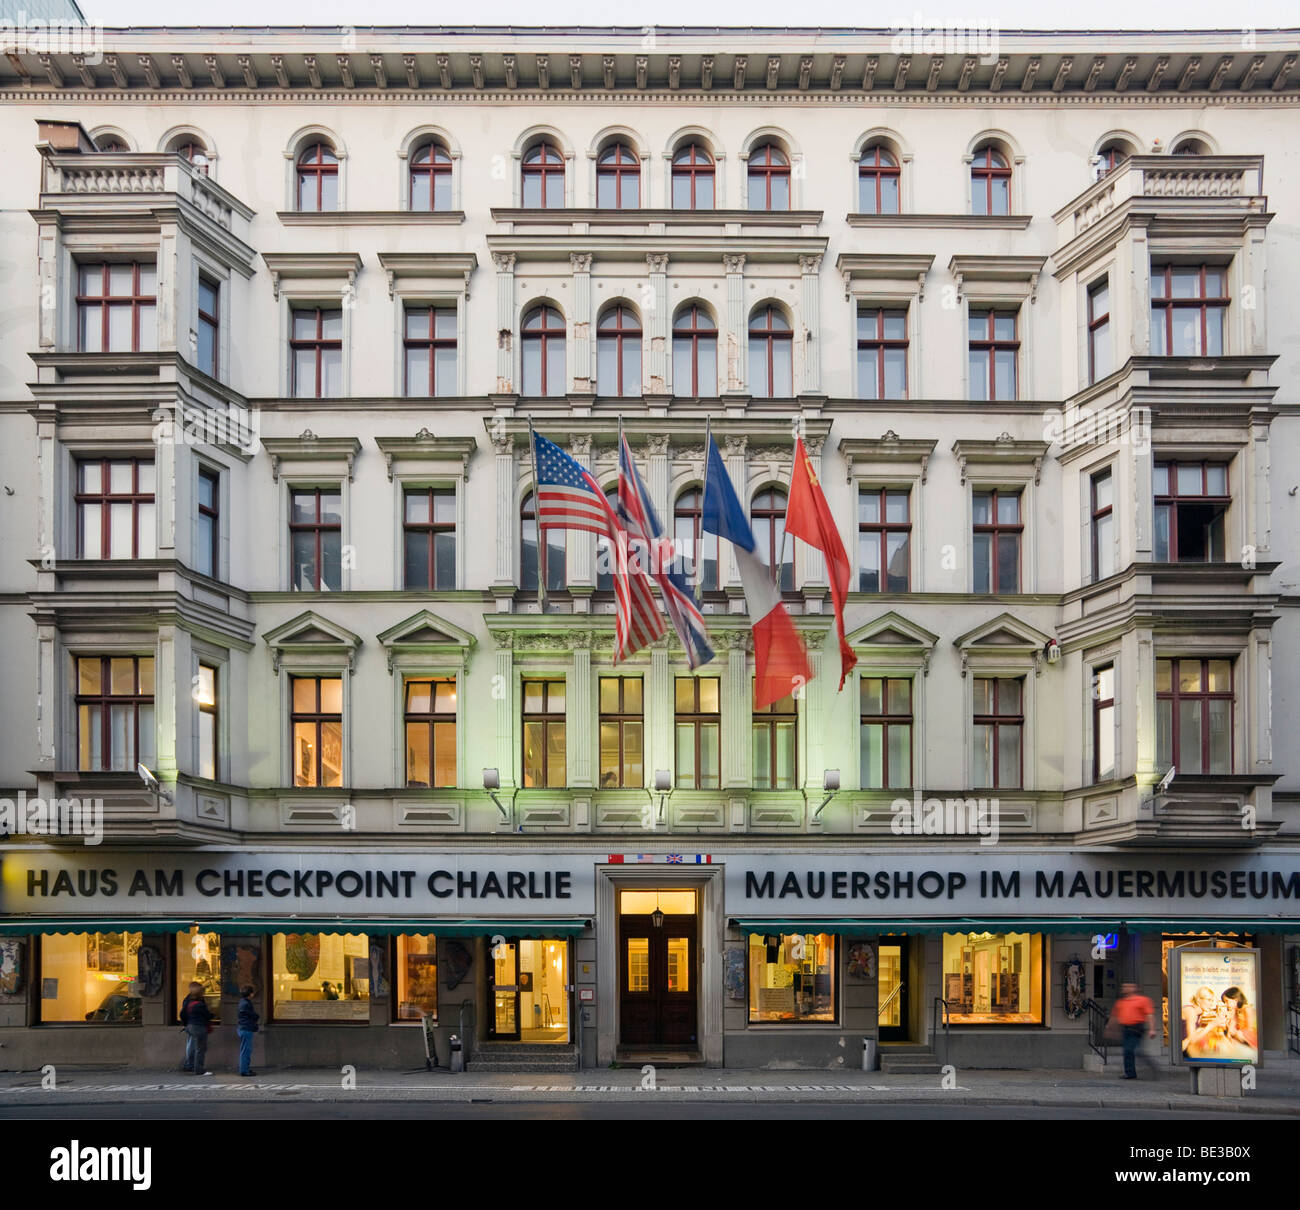 haus am checkpoint charlie building mauermuseum berlin wall museum stock photo royalty free. Black Bedroom Furniture Sets. Home Design Ideas